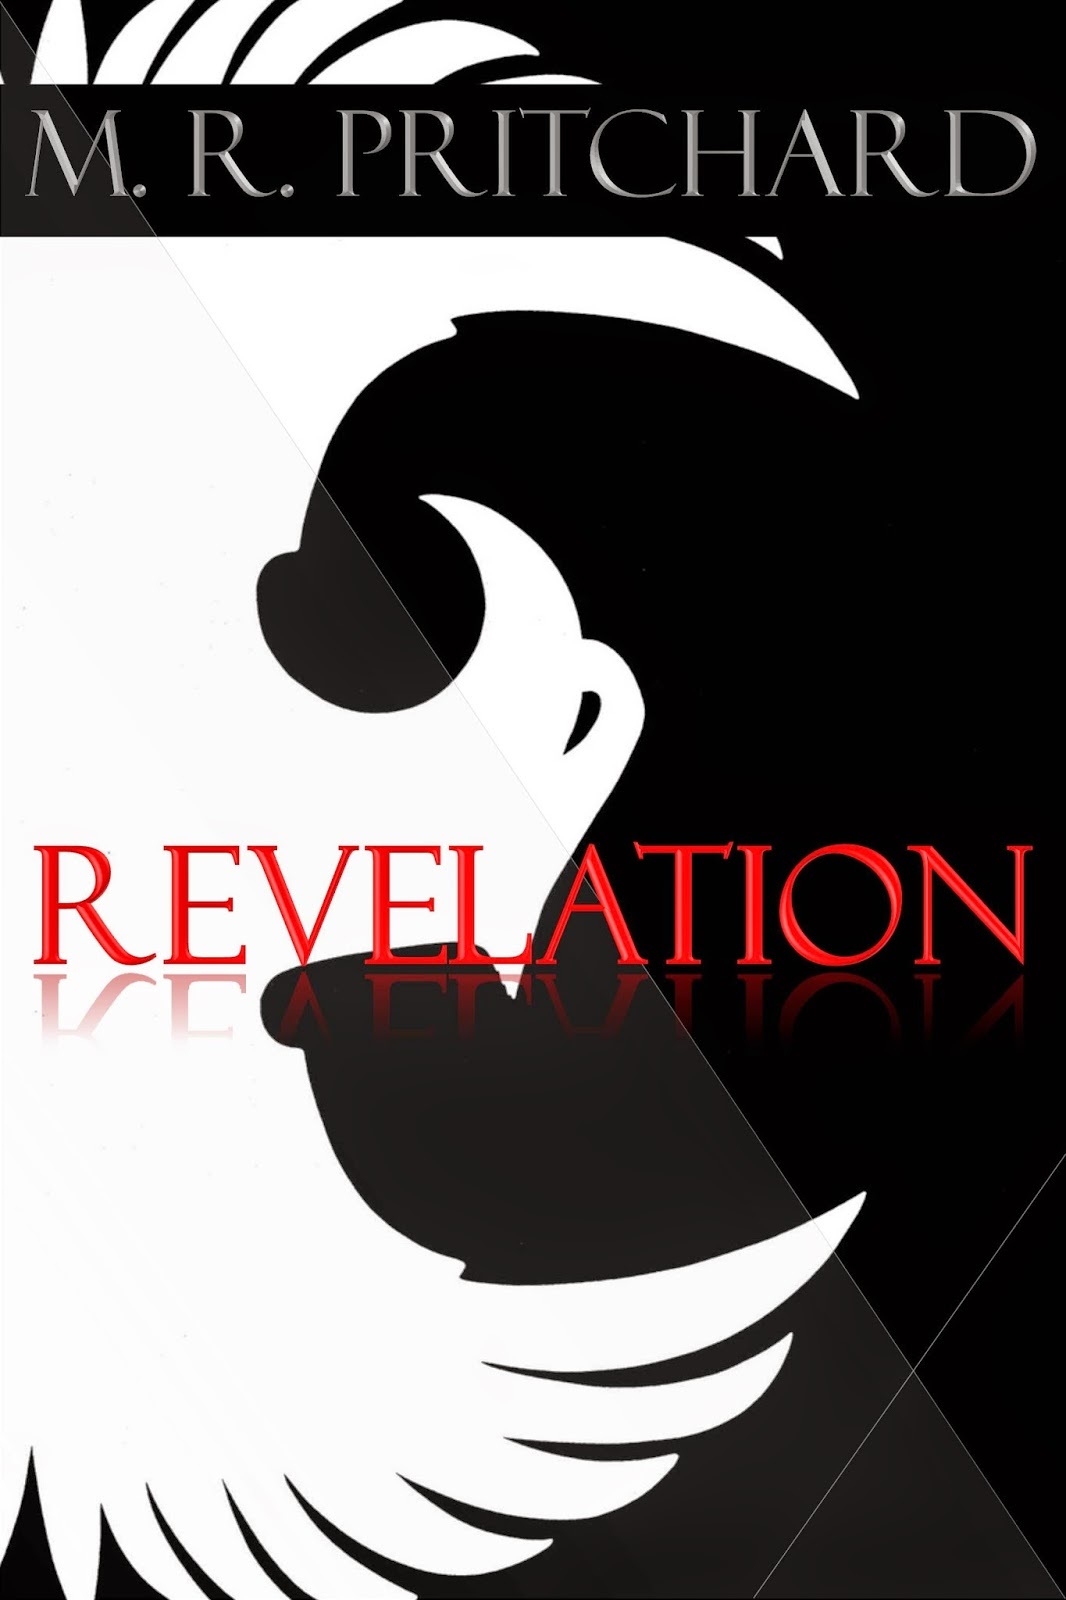 http://www.amazon.com/Revelation-The-Phoenix-Project-Pritchard-ebook/dp/B00IZPH9NI/ref=pd_sim_kstore_1?ie=UTF8&refRID=1VYVRD4HPM8K1M3BDCYK